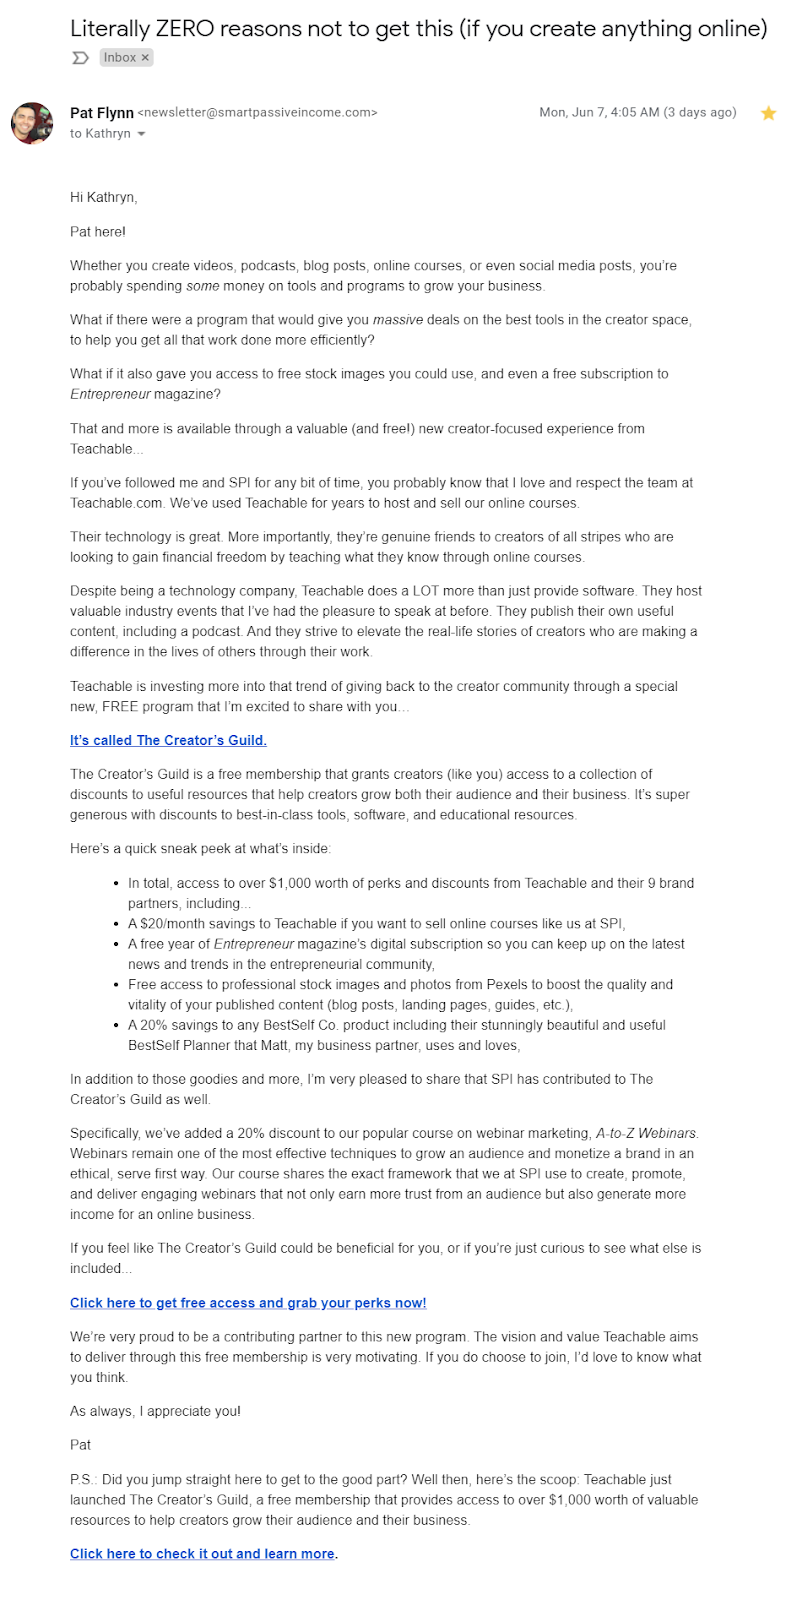 Long, text based promotional email from Pat Flynn